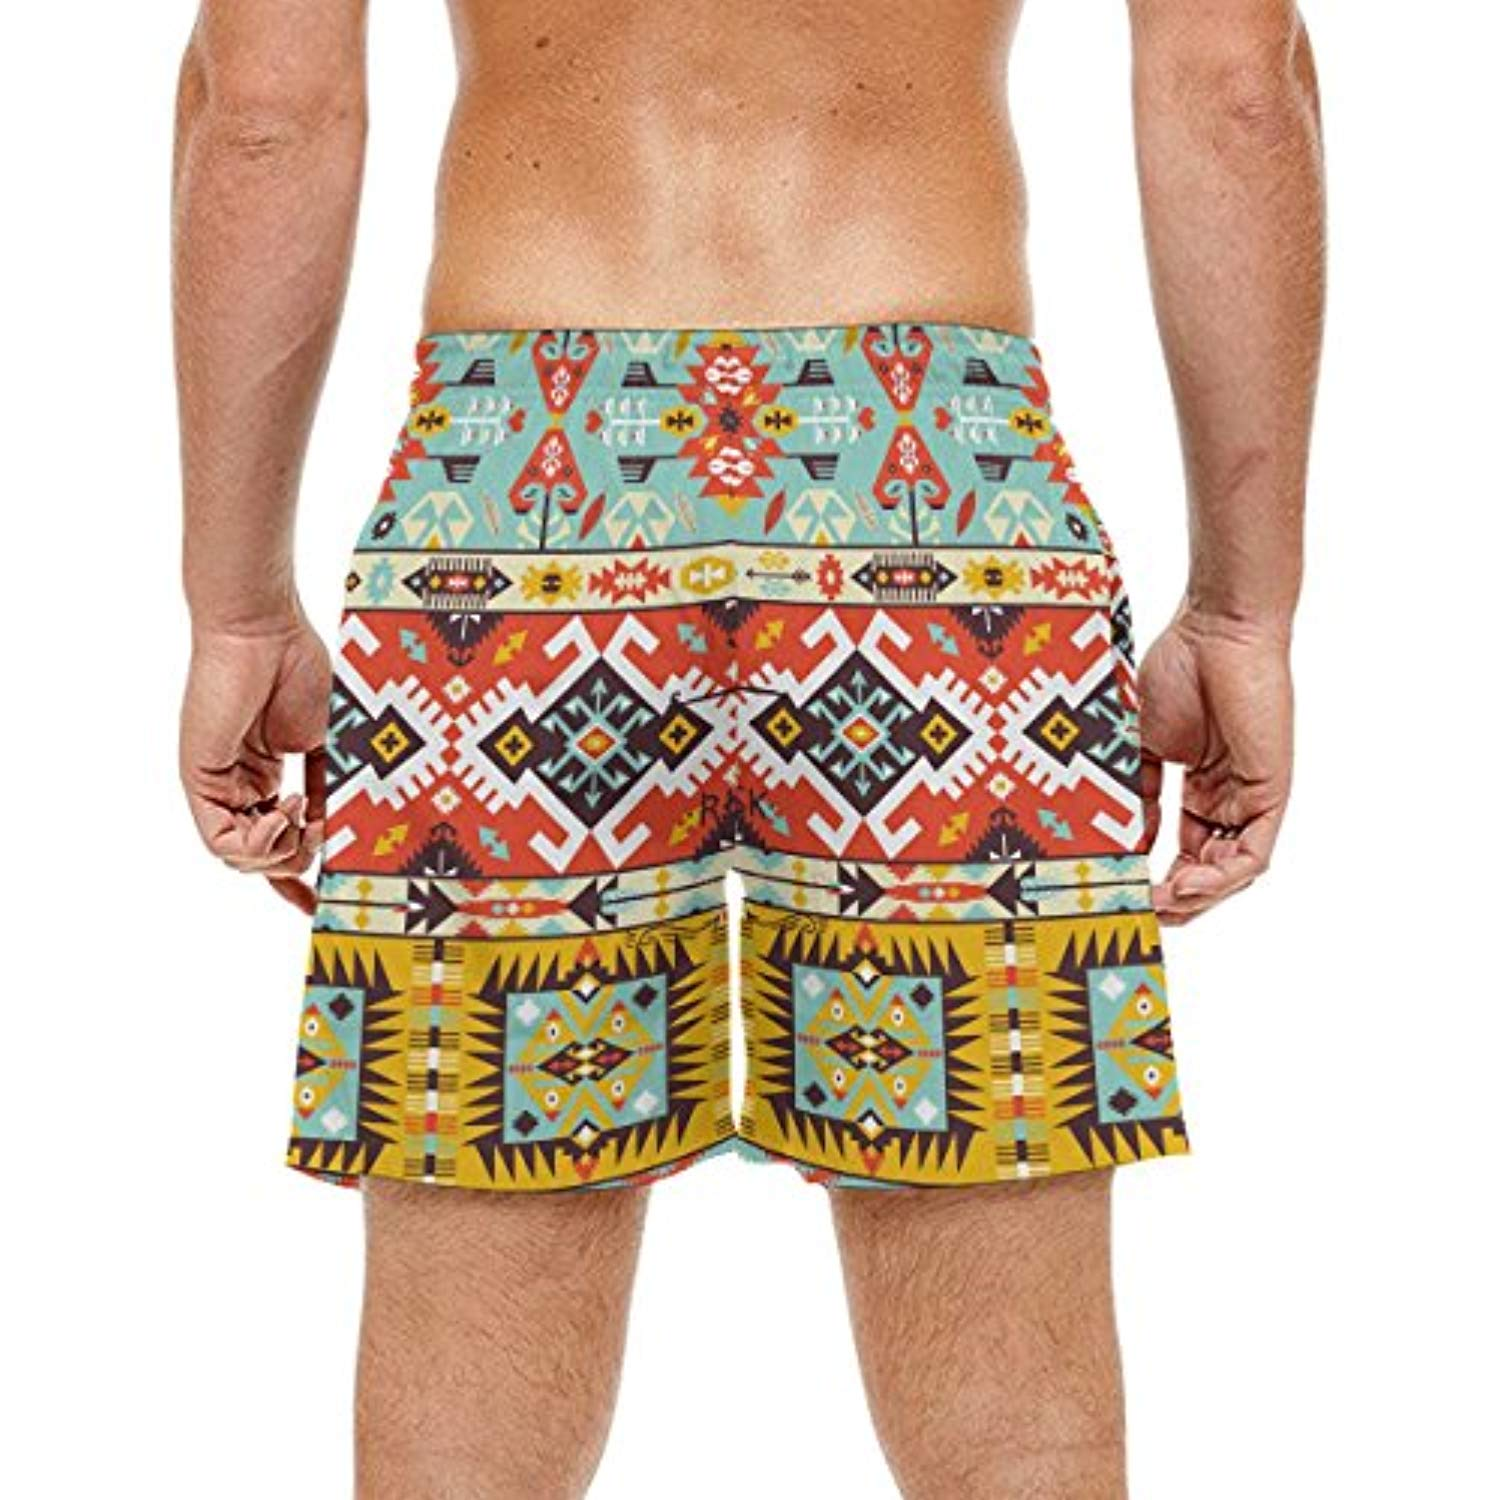 African Art Tribal Print Men's Swim Trunks Water Beach Shorts with Pockets